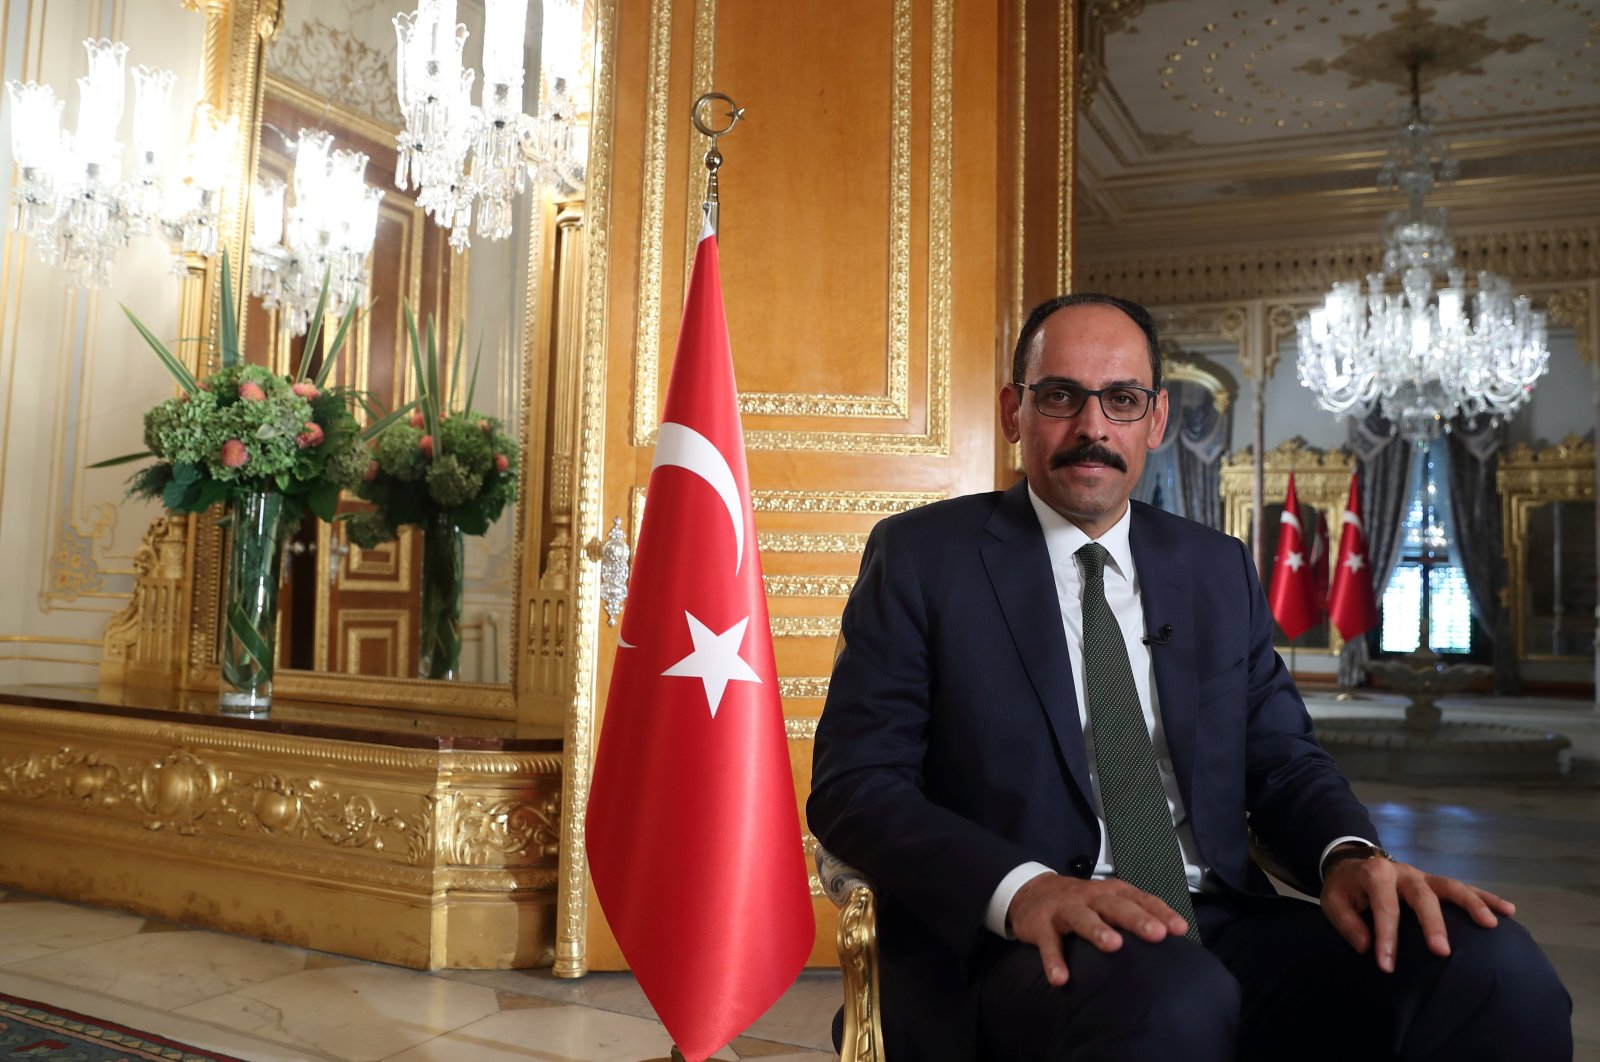 President Spokesperson Ibrahim Kalın is pictured during an interview with Reuters in Istanbul, Turkey Sept. 27, 2020. (Reuters Photo)